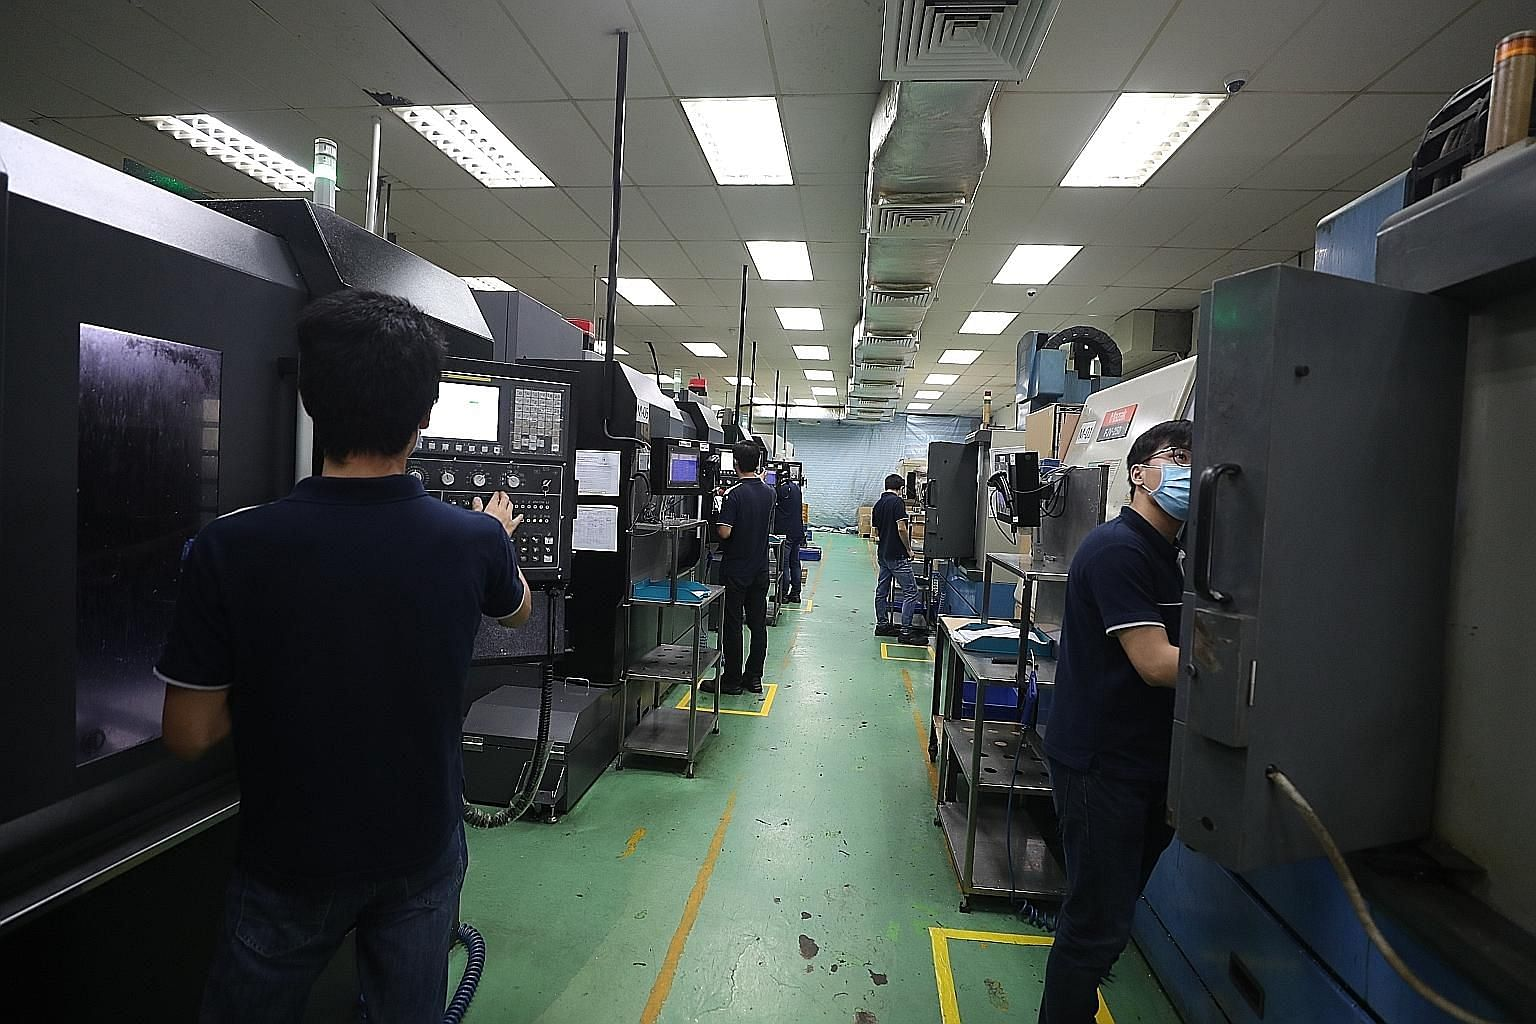 Safe distancing measures in place at Shine Precision Engineering. Social distancing and contact tracing are likely to be a big part of the day-to-day operations in firms for the long haul, says the writer. ST PHOTO: TIMOTHY DAVID